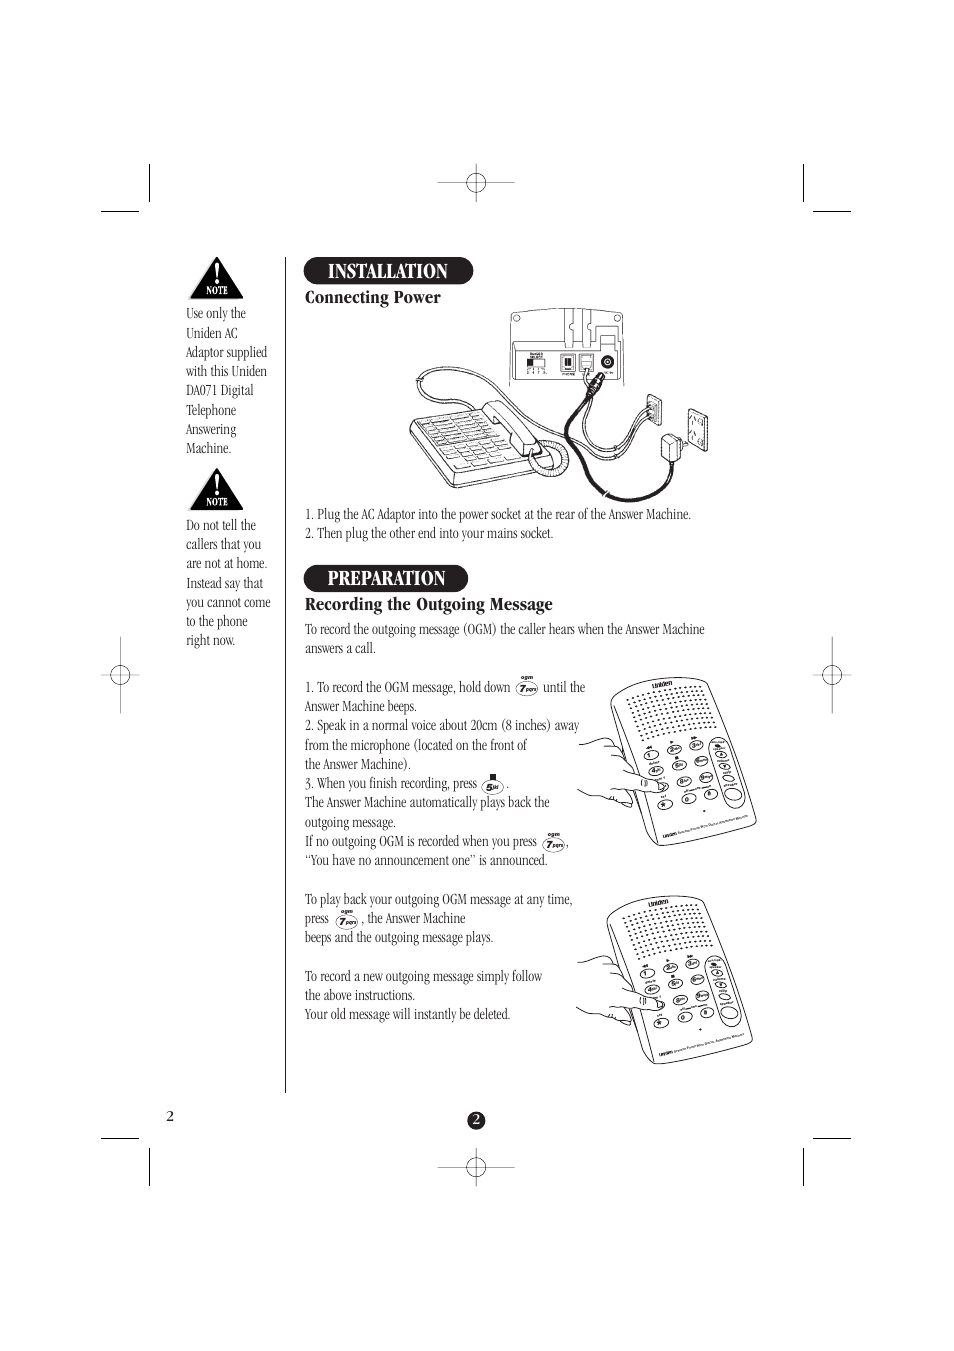 Uniden User Manuals Headset Wiring Diagram Installation Preparation Connecting Power Da071 Rh Manualsdir Com 58 Manual Guide